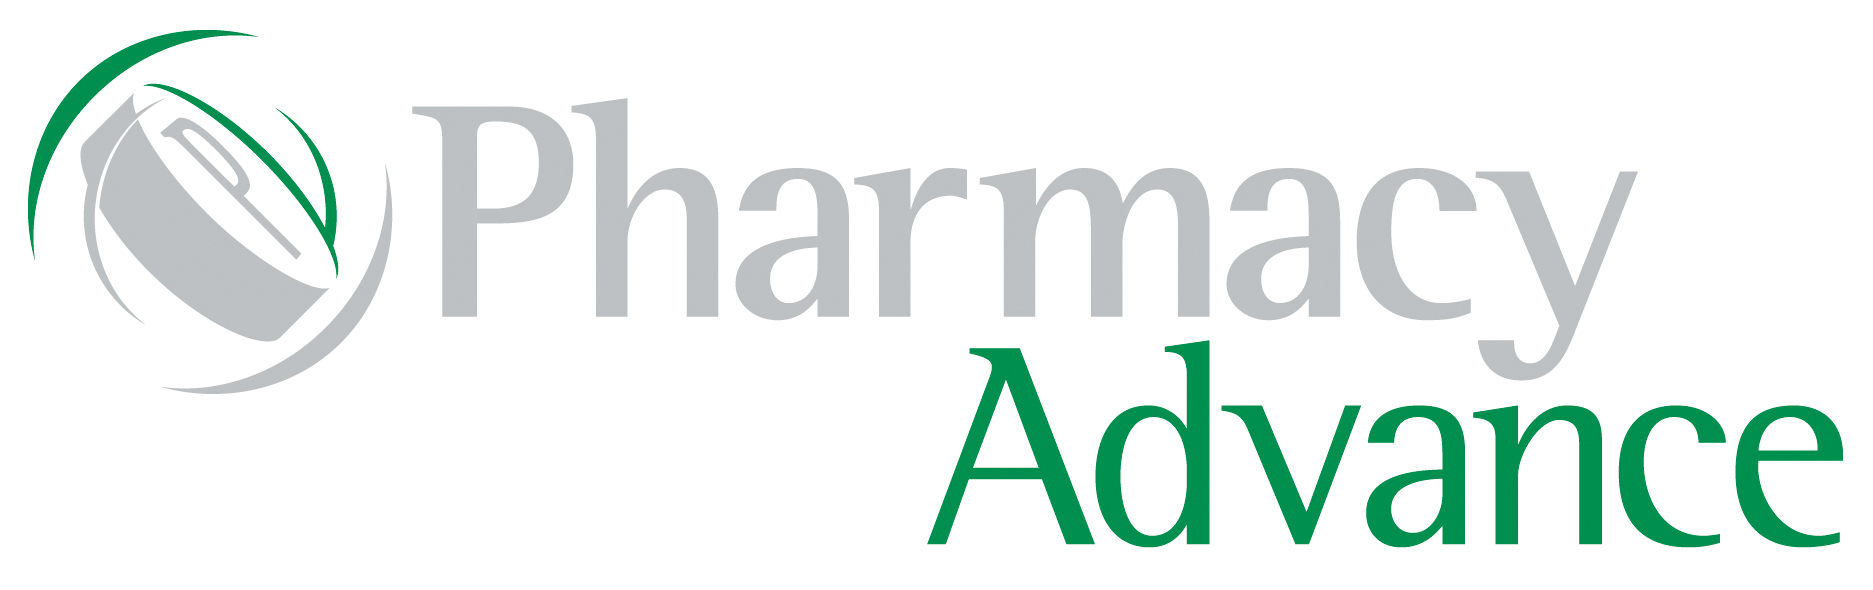 Pharmacy Advance Launches in 2009